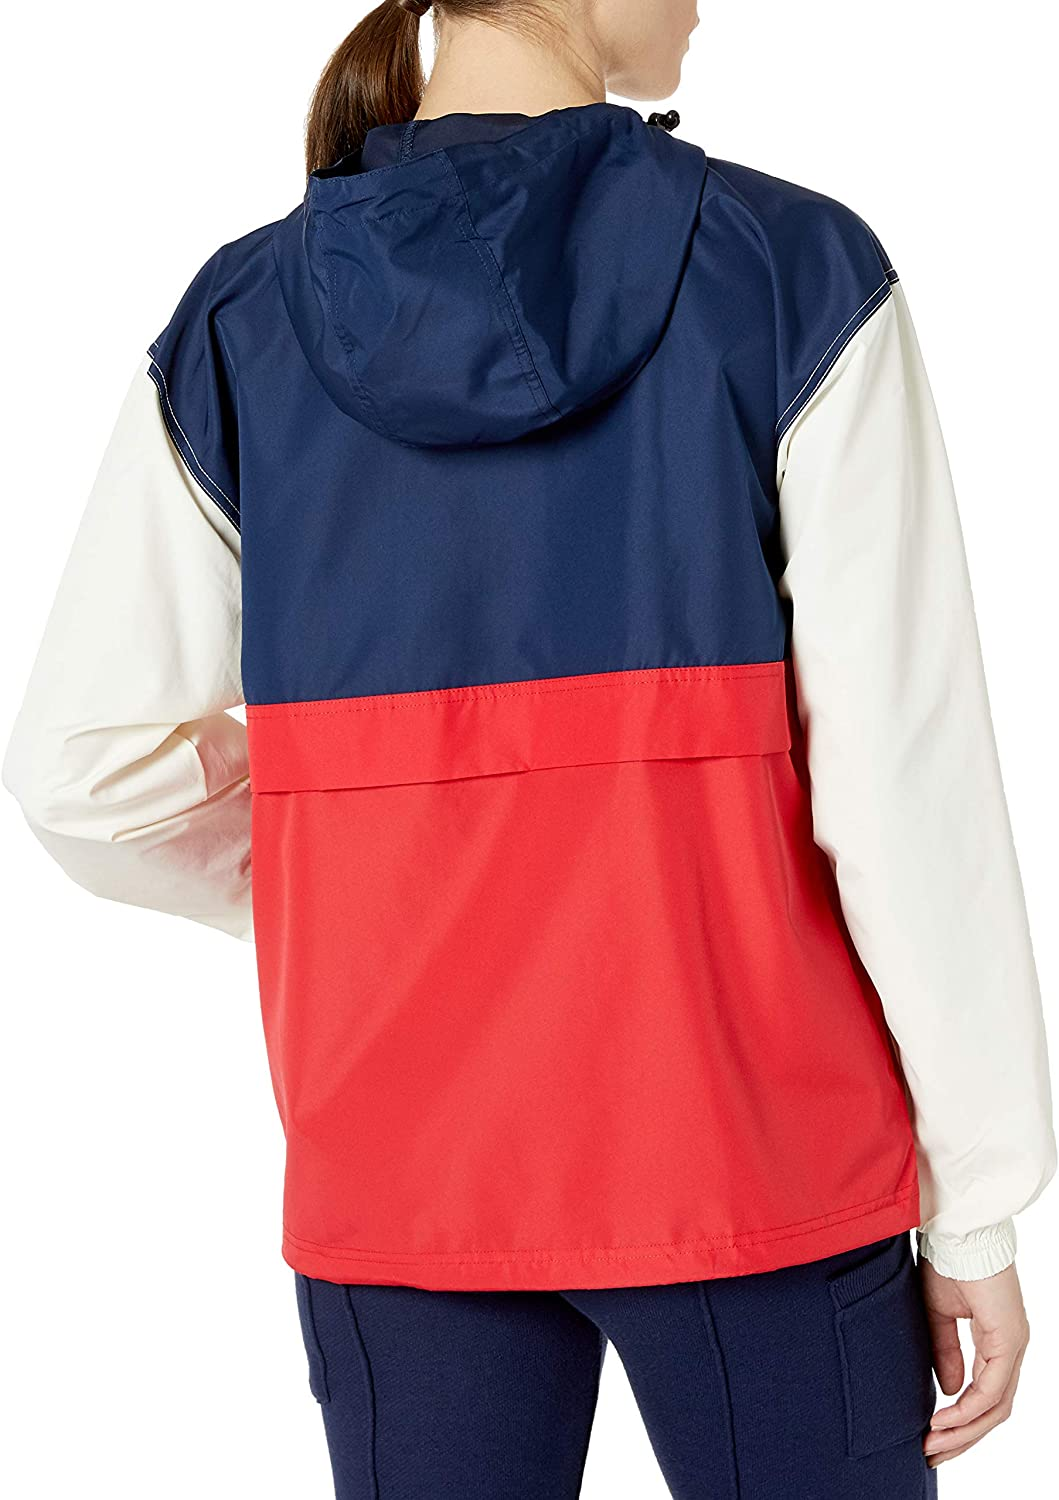 Champion Women's Packable Jacket Solid